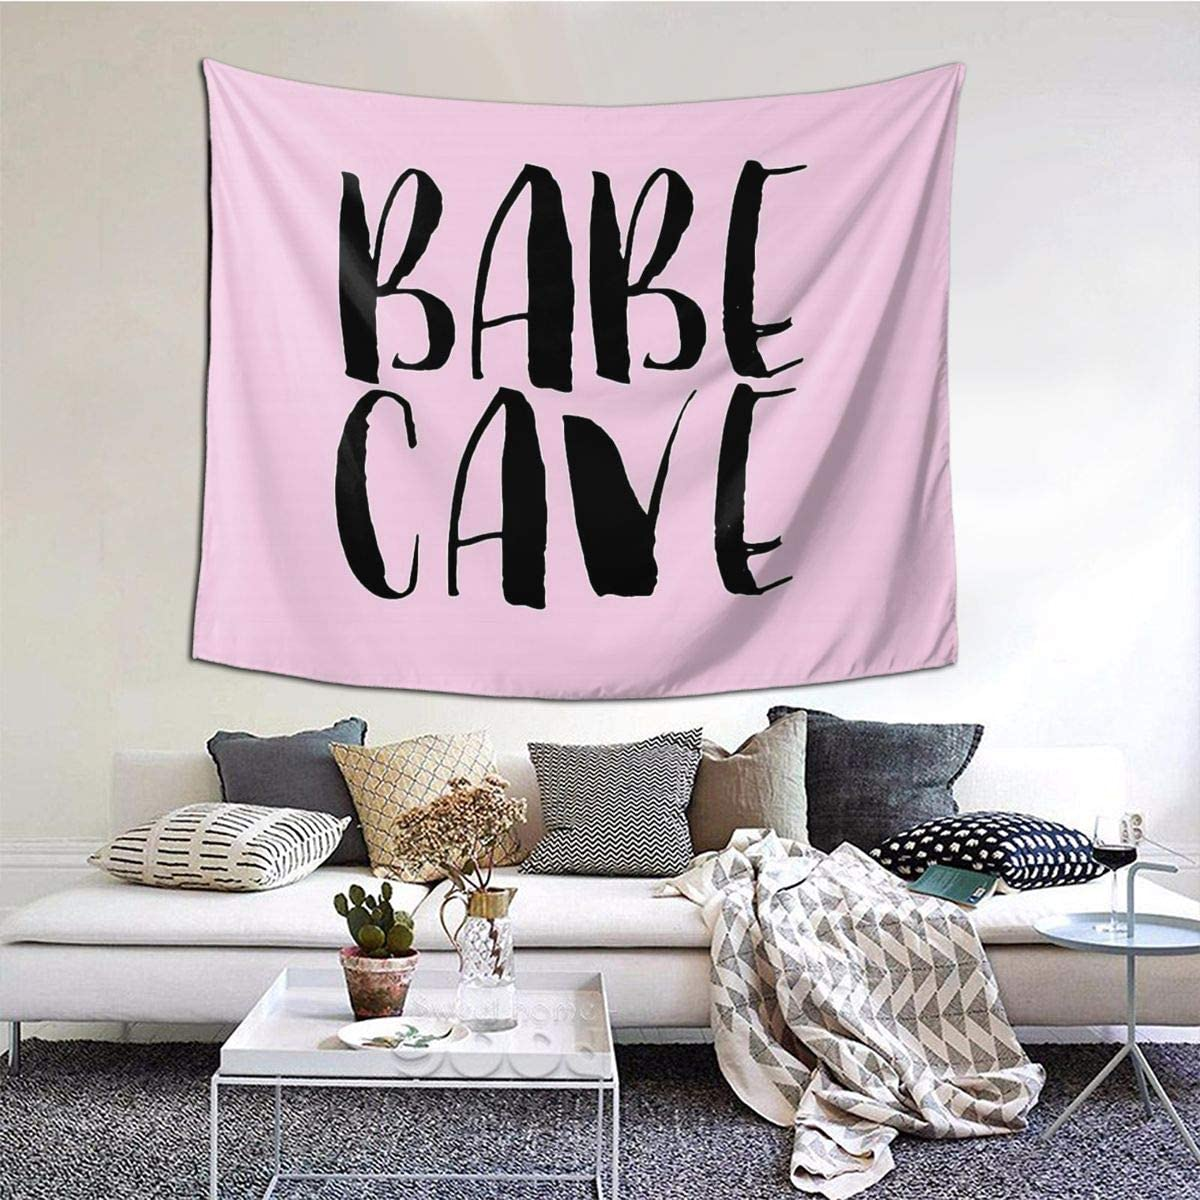 MOONSOON Babe Cave Boutique Tapestry Wall Hanging Tapestry Vintage Tapestry Wall Tapestry Micro Fiber Peach Home Decor 59.1x51.2 in